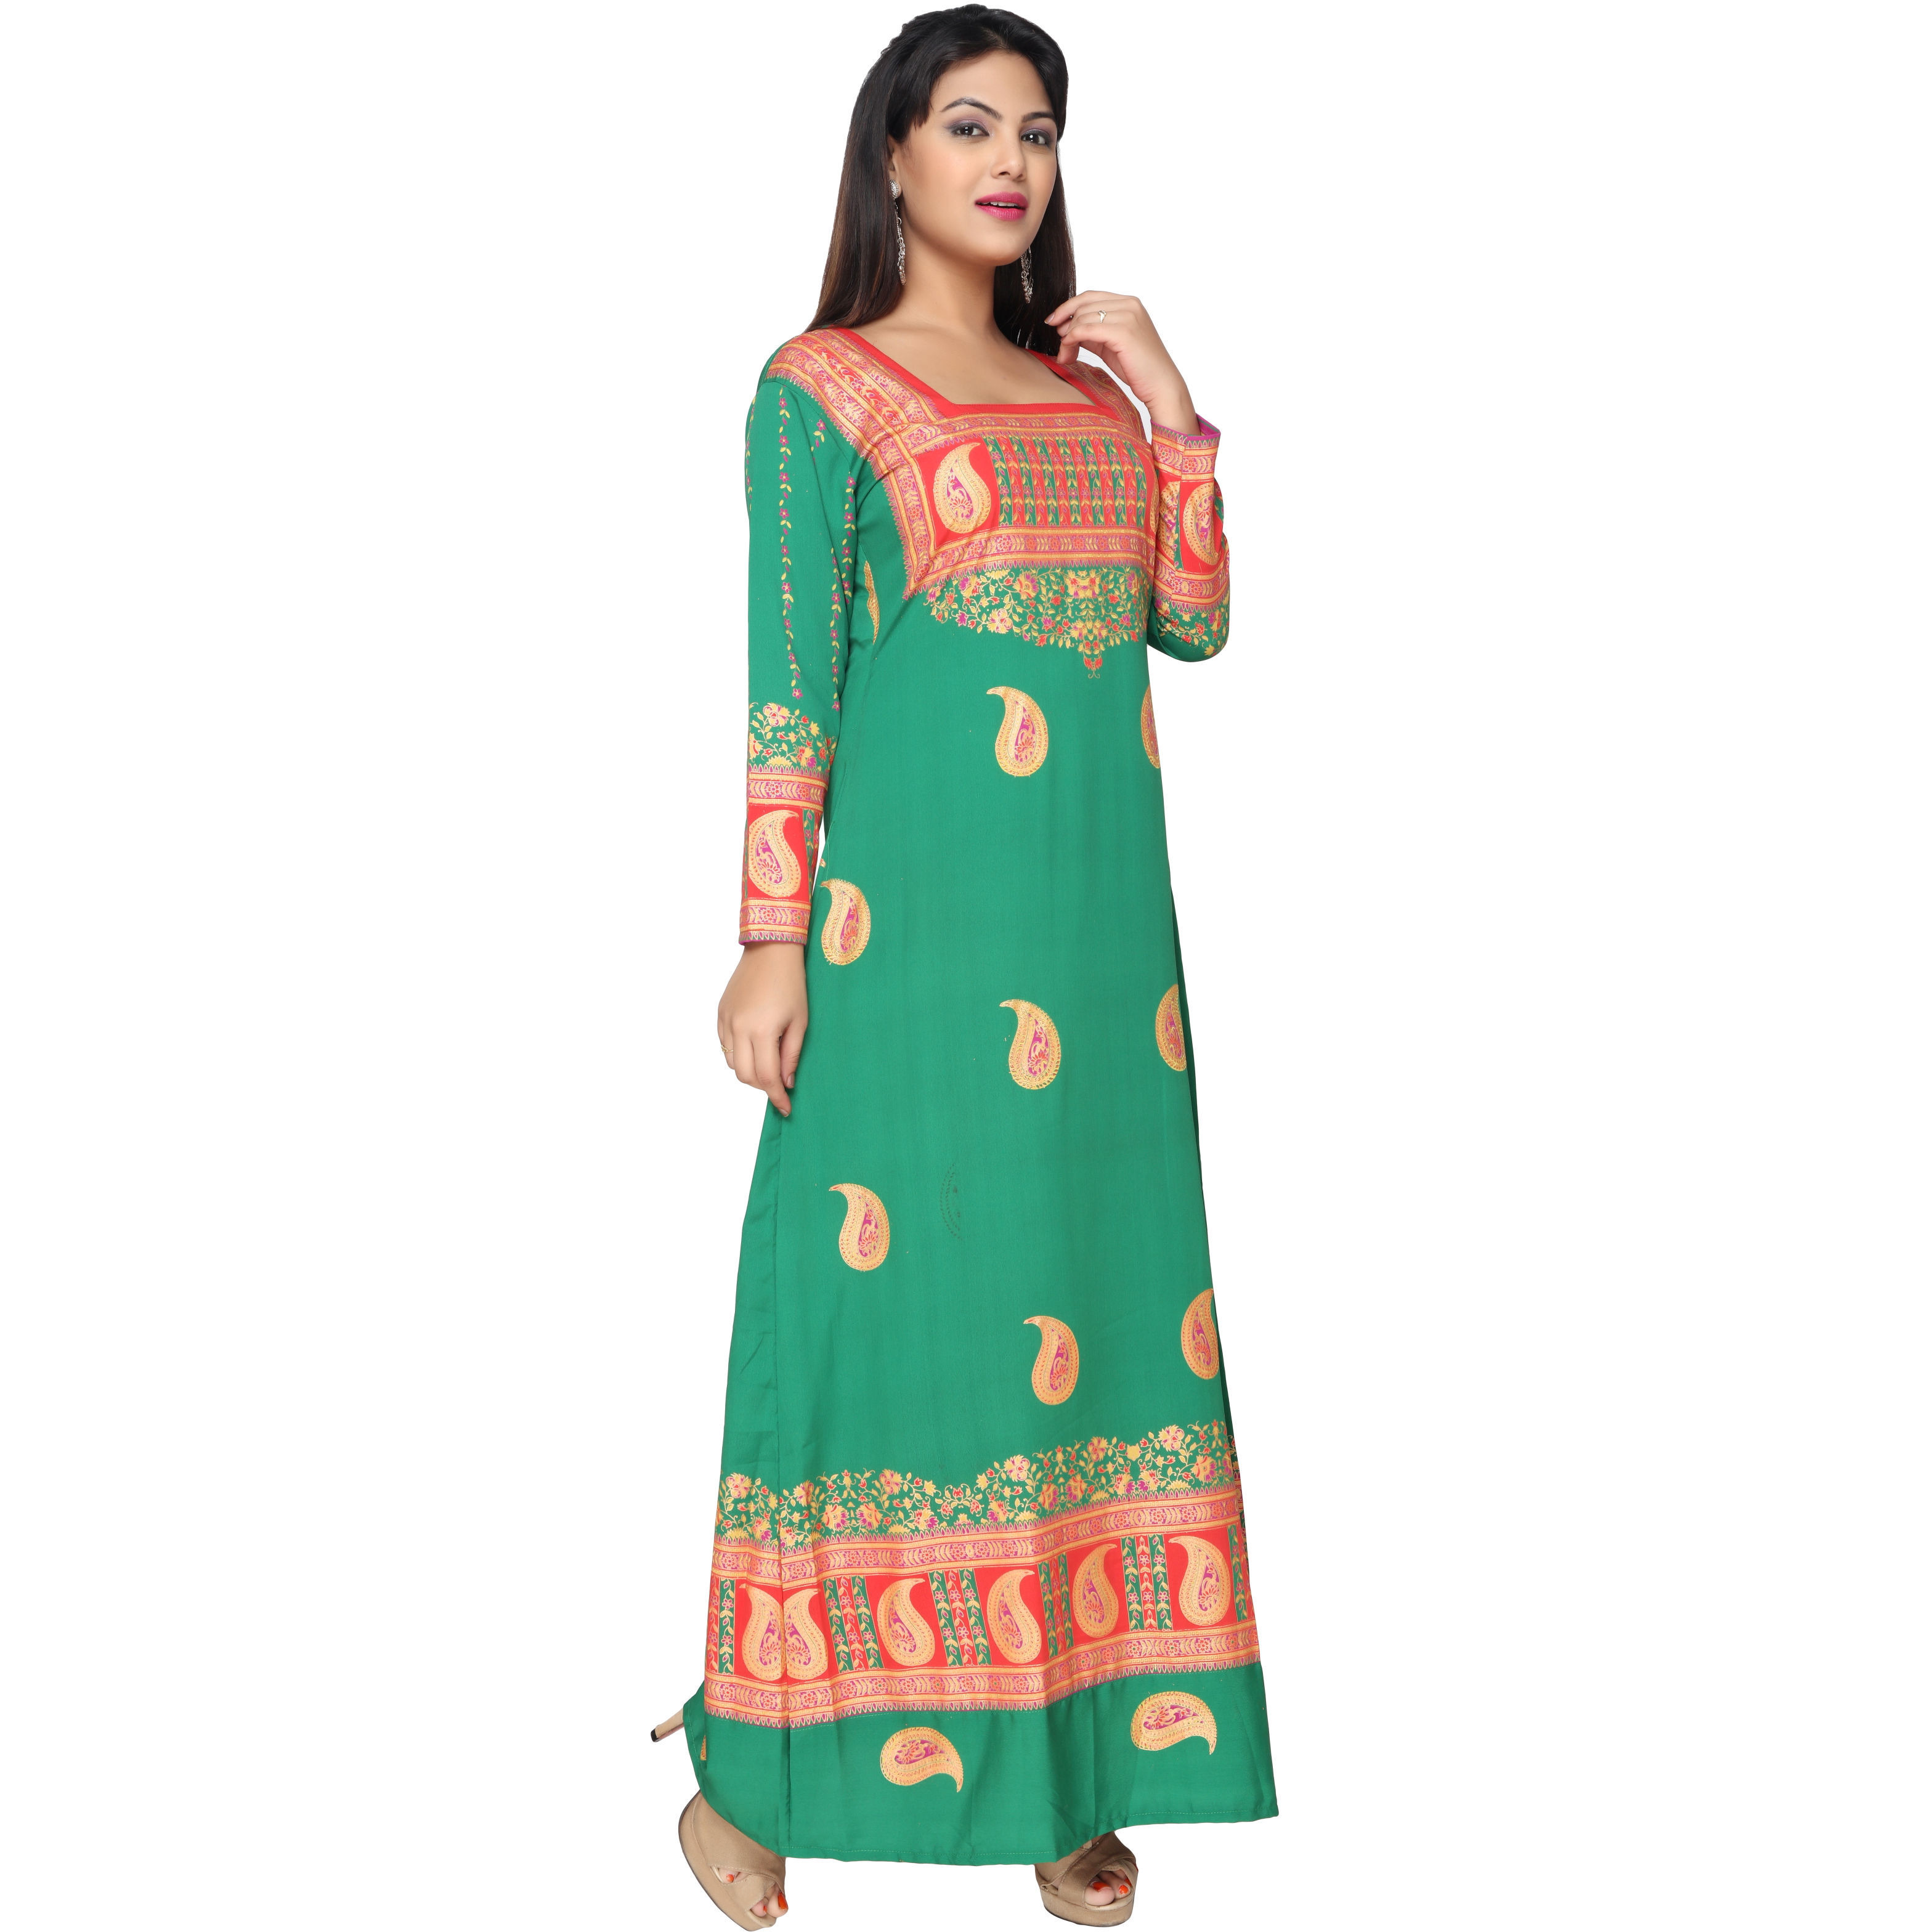 TrendyFashionMall Green Gold Print Kaftan Abaya Maxi Dress KFT01014 S-38 (Size:44 - X-LARGE, Color:TFMKFT01014-GREEN)